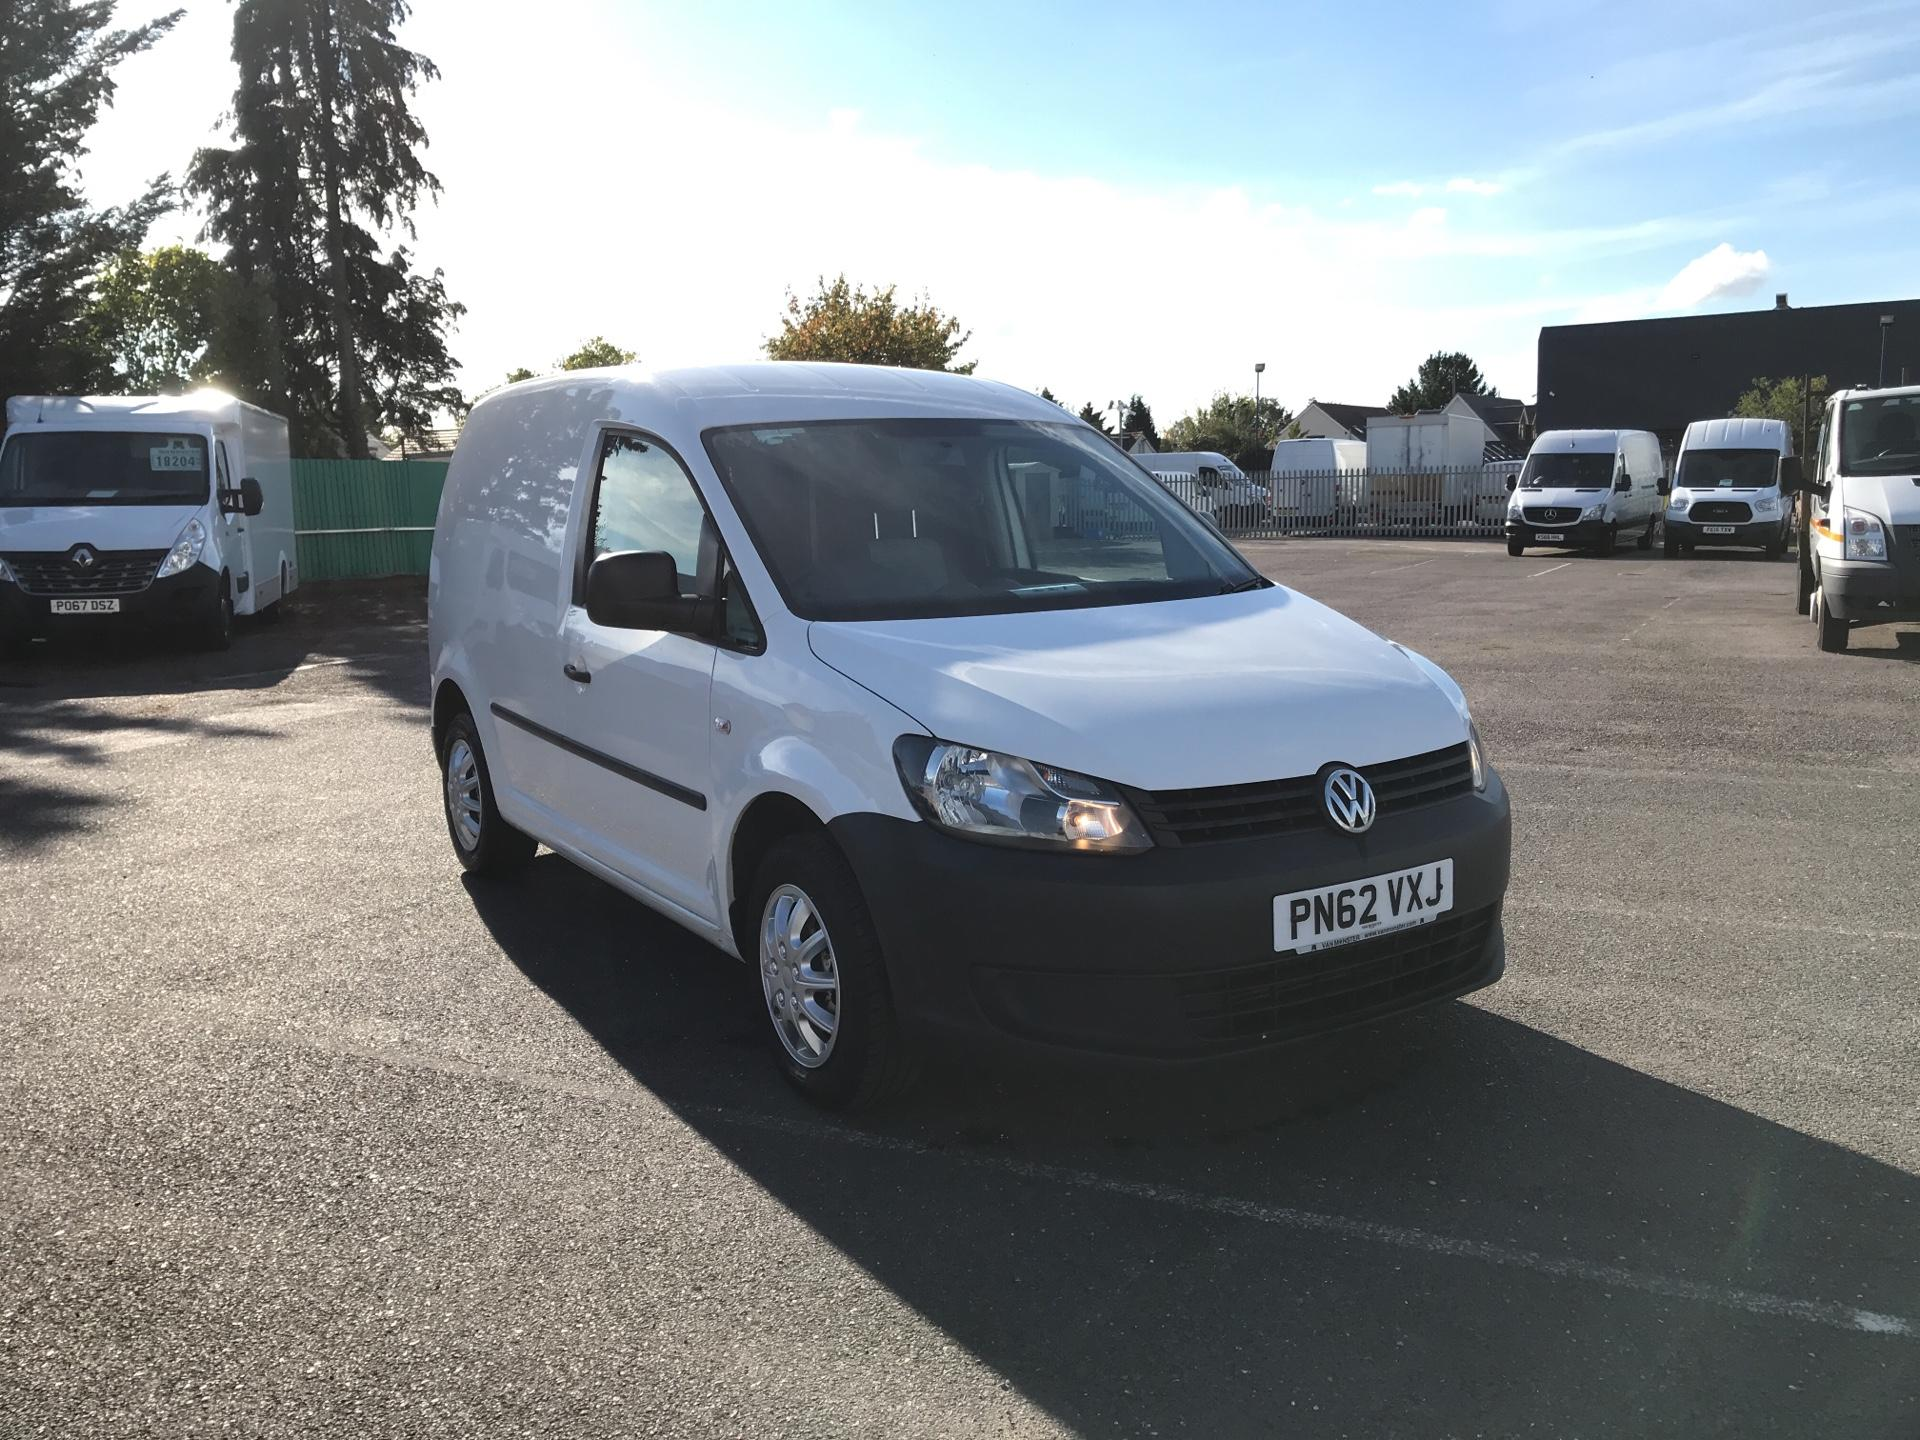 2012 Volkswagen Caddy 1.6 TDI 75PS EURO 5*VALUE RANGE VEHICLE CONDITION REFLECTED IN PRICE* (PN62VXJ)